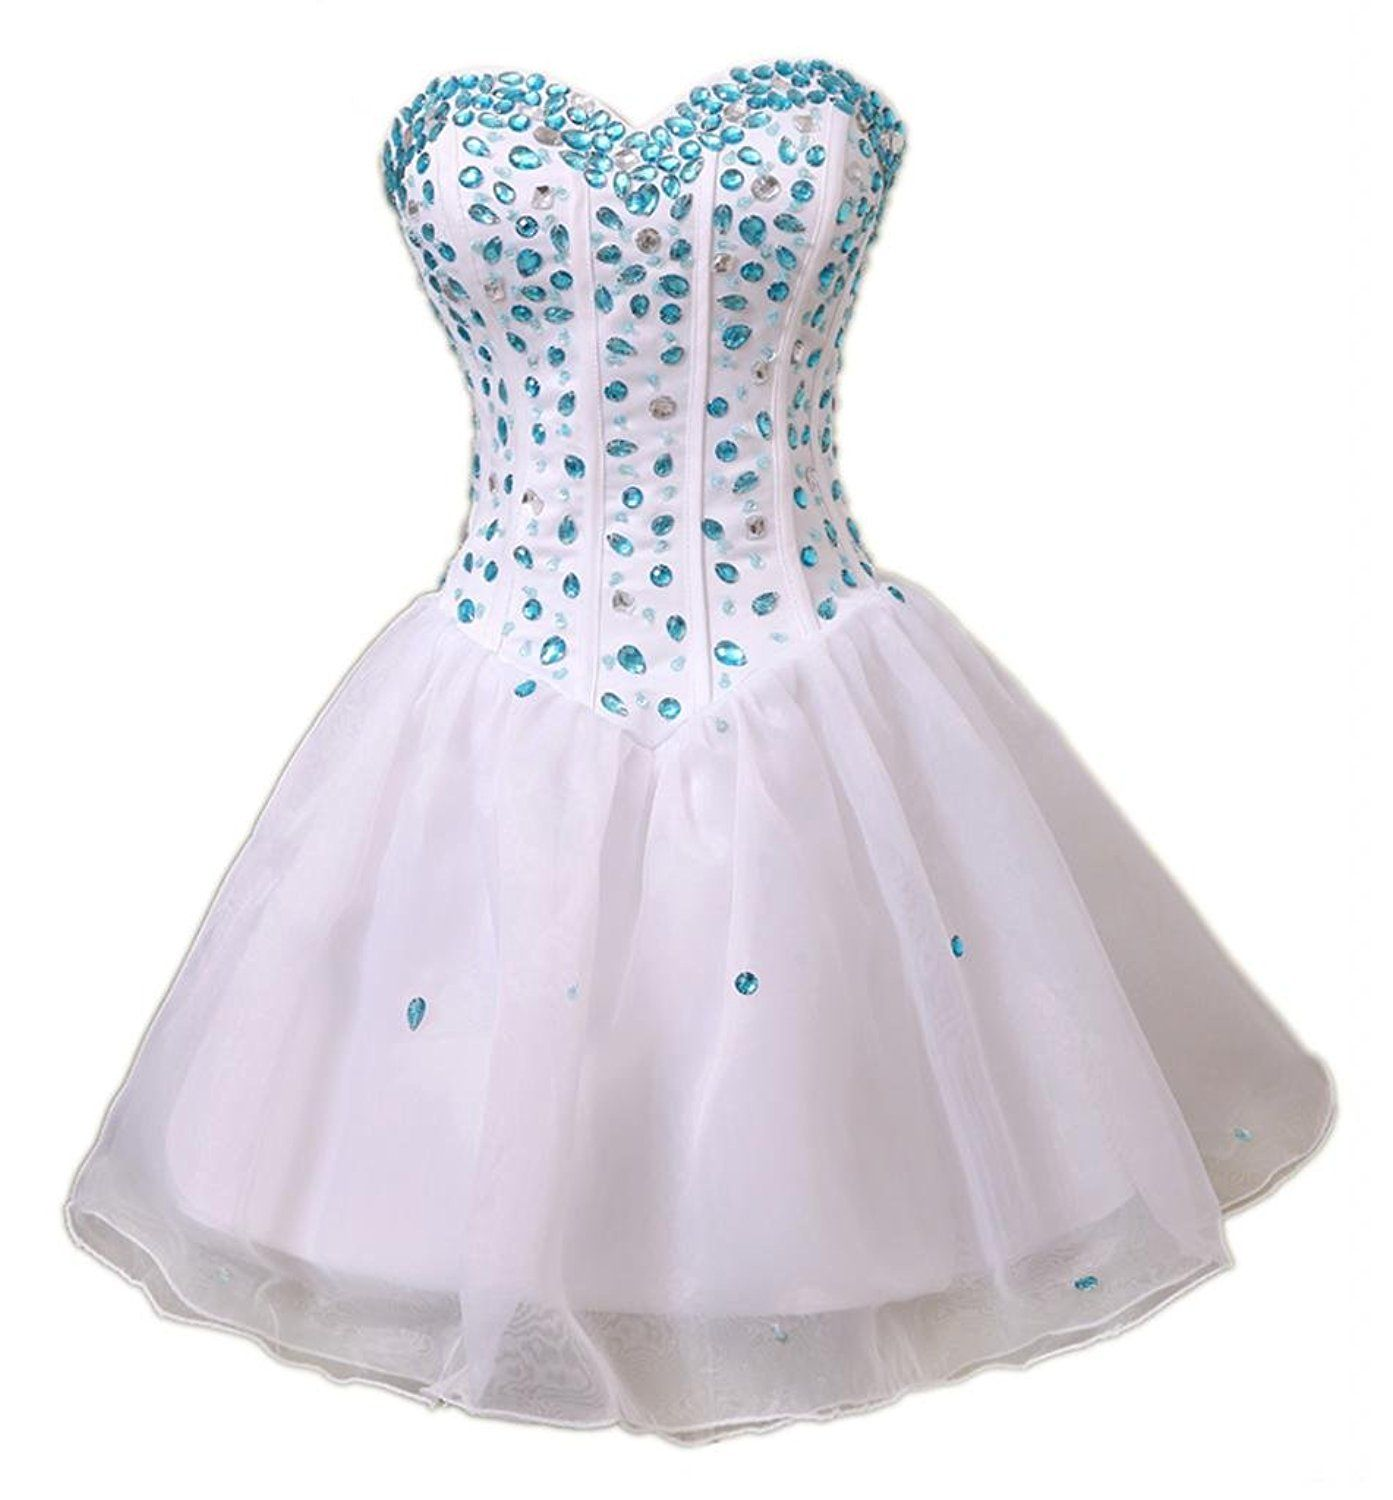 Albroseshort mini womens prom dresses find out more details by